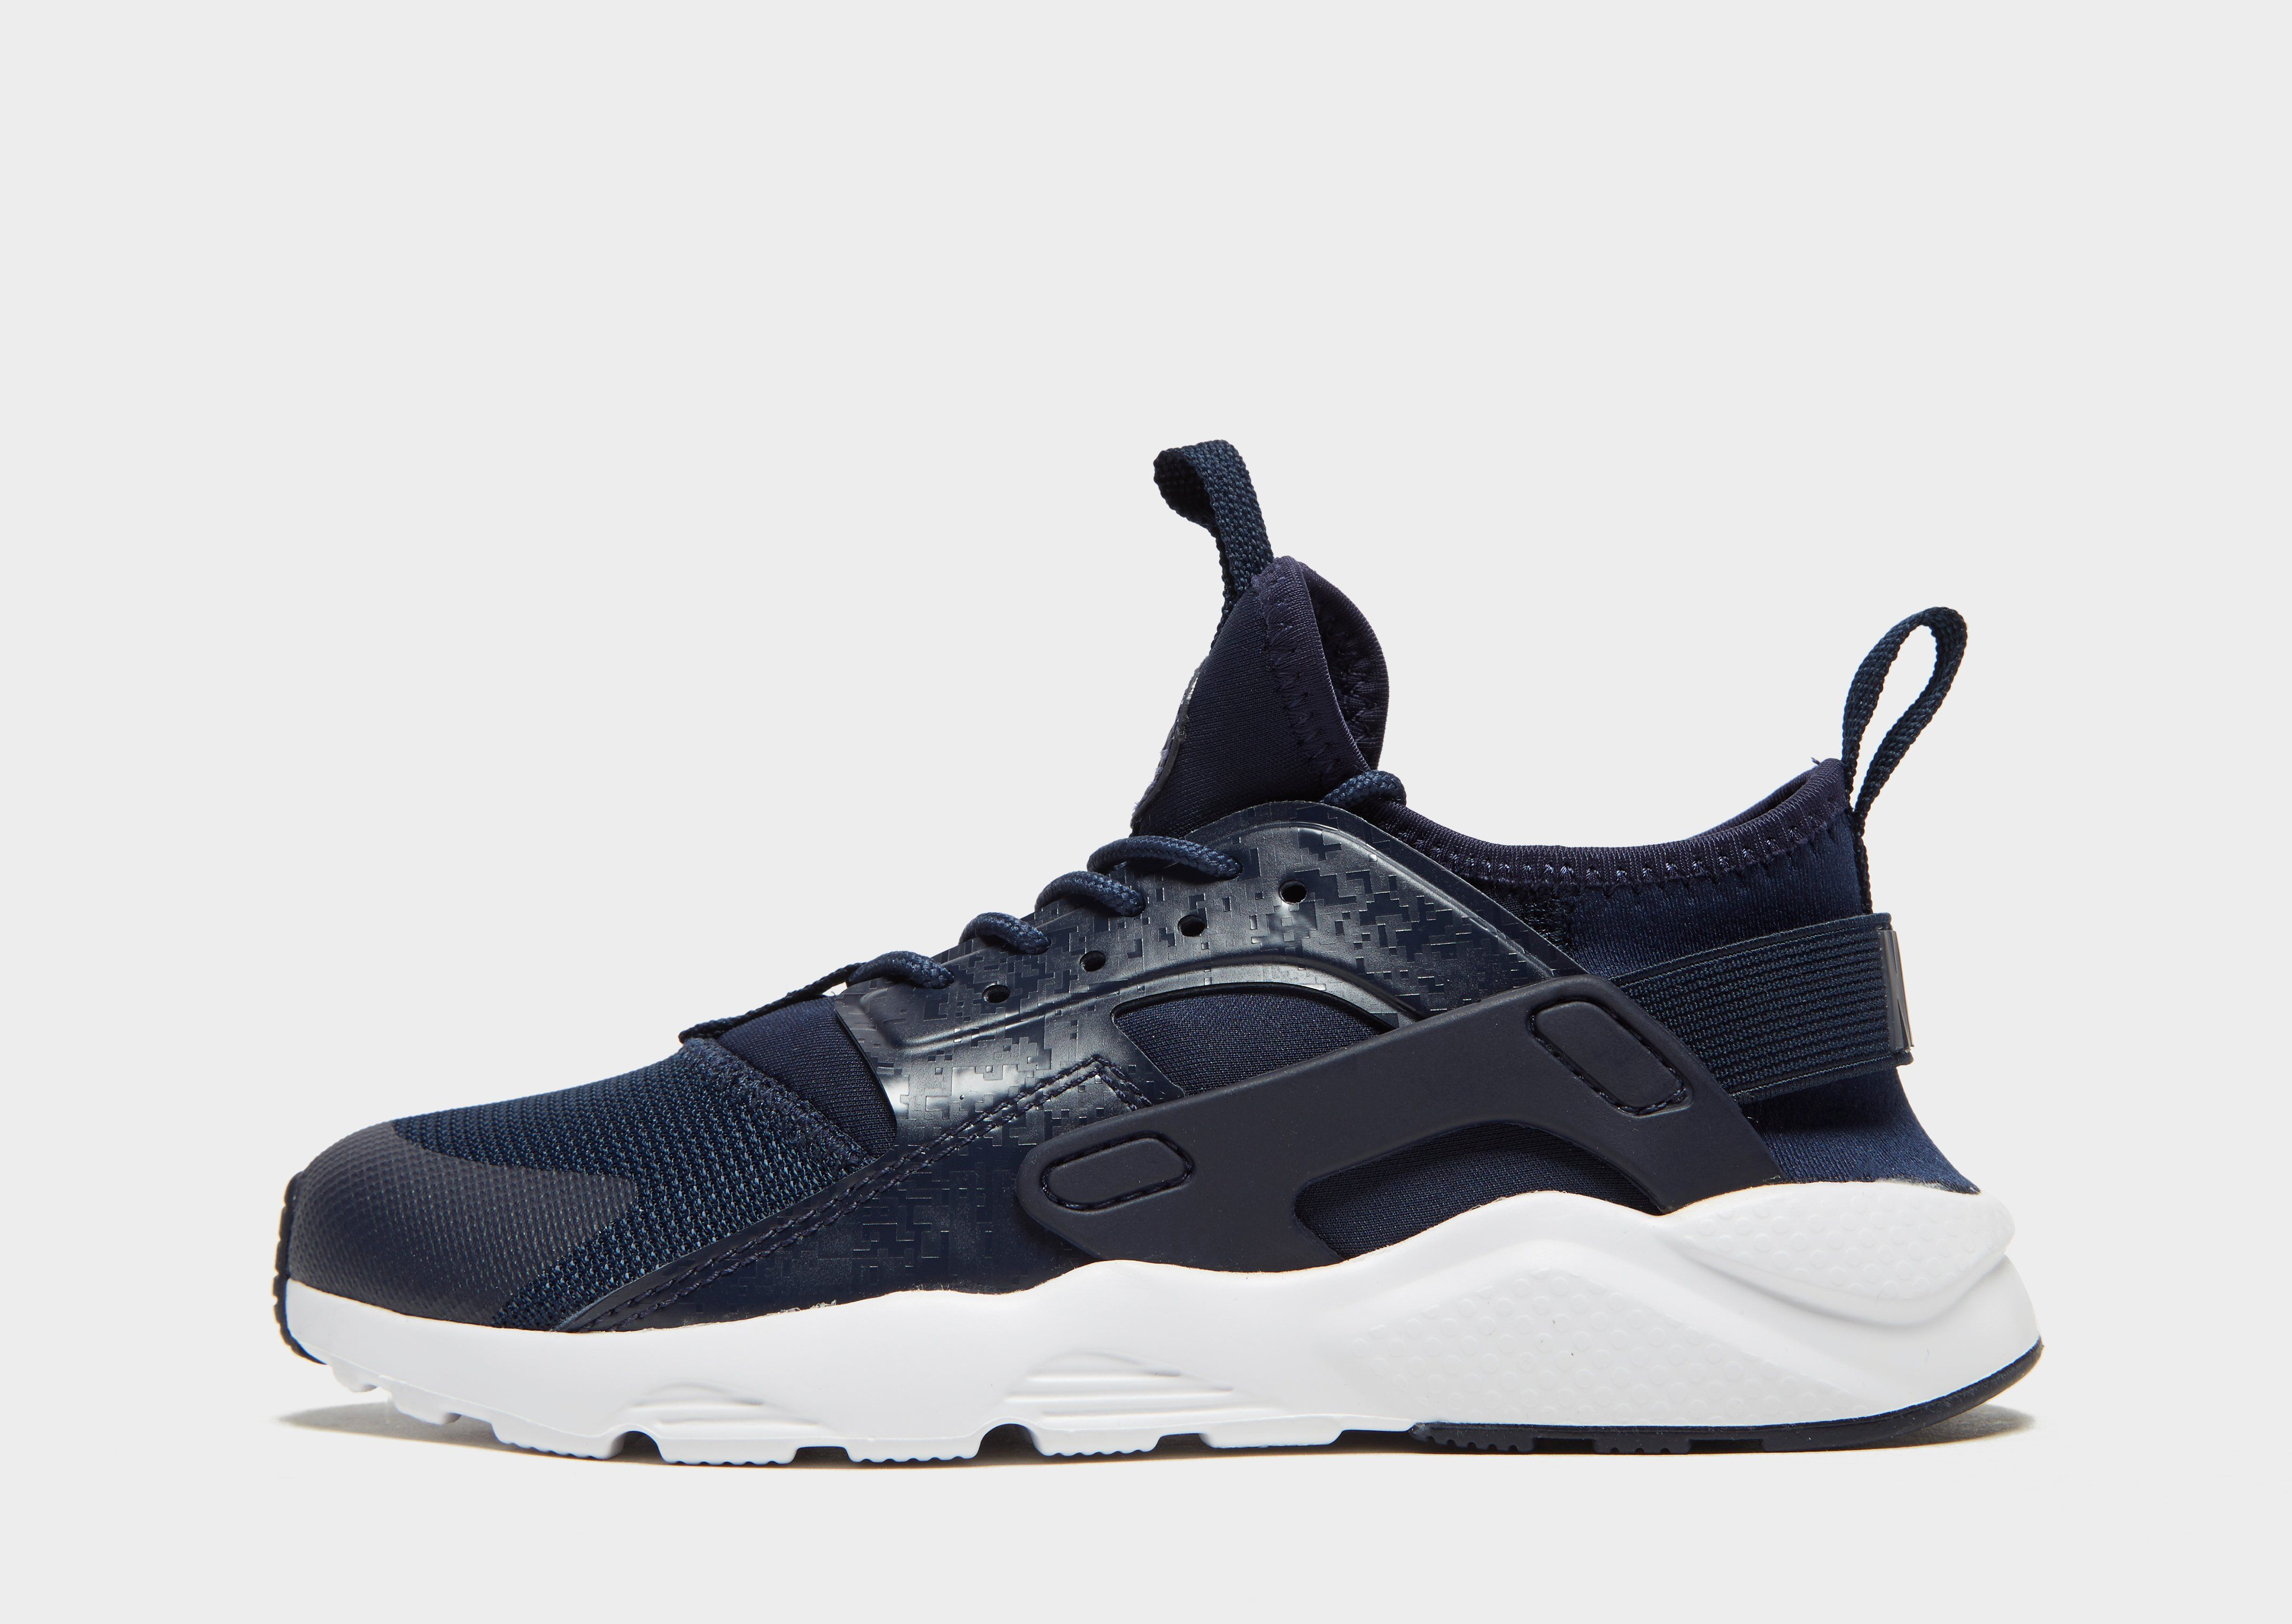 a2e097c6182da Nike Air Huarache Ultra Children